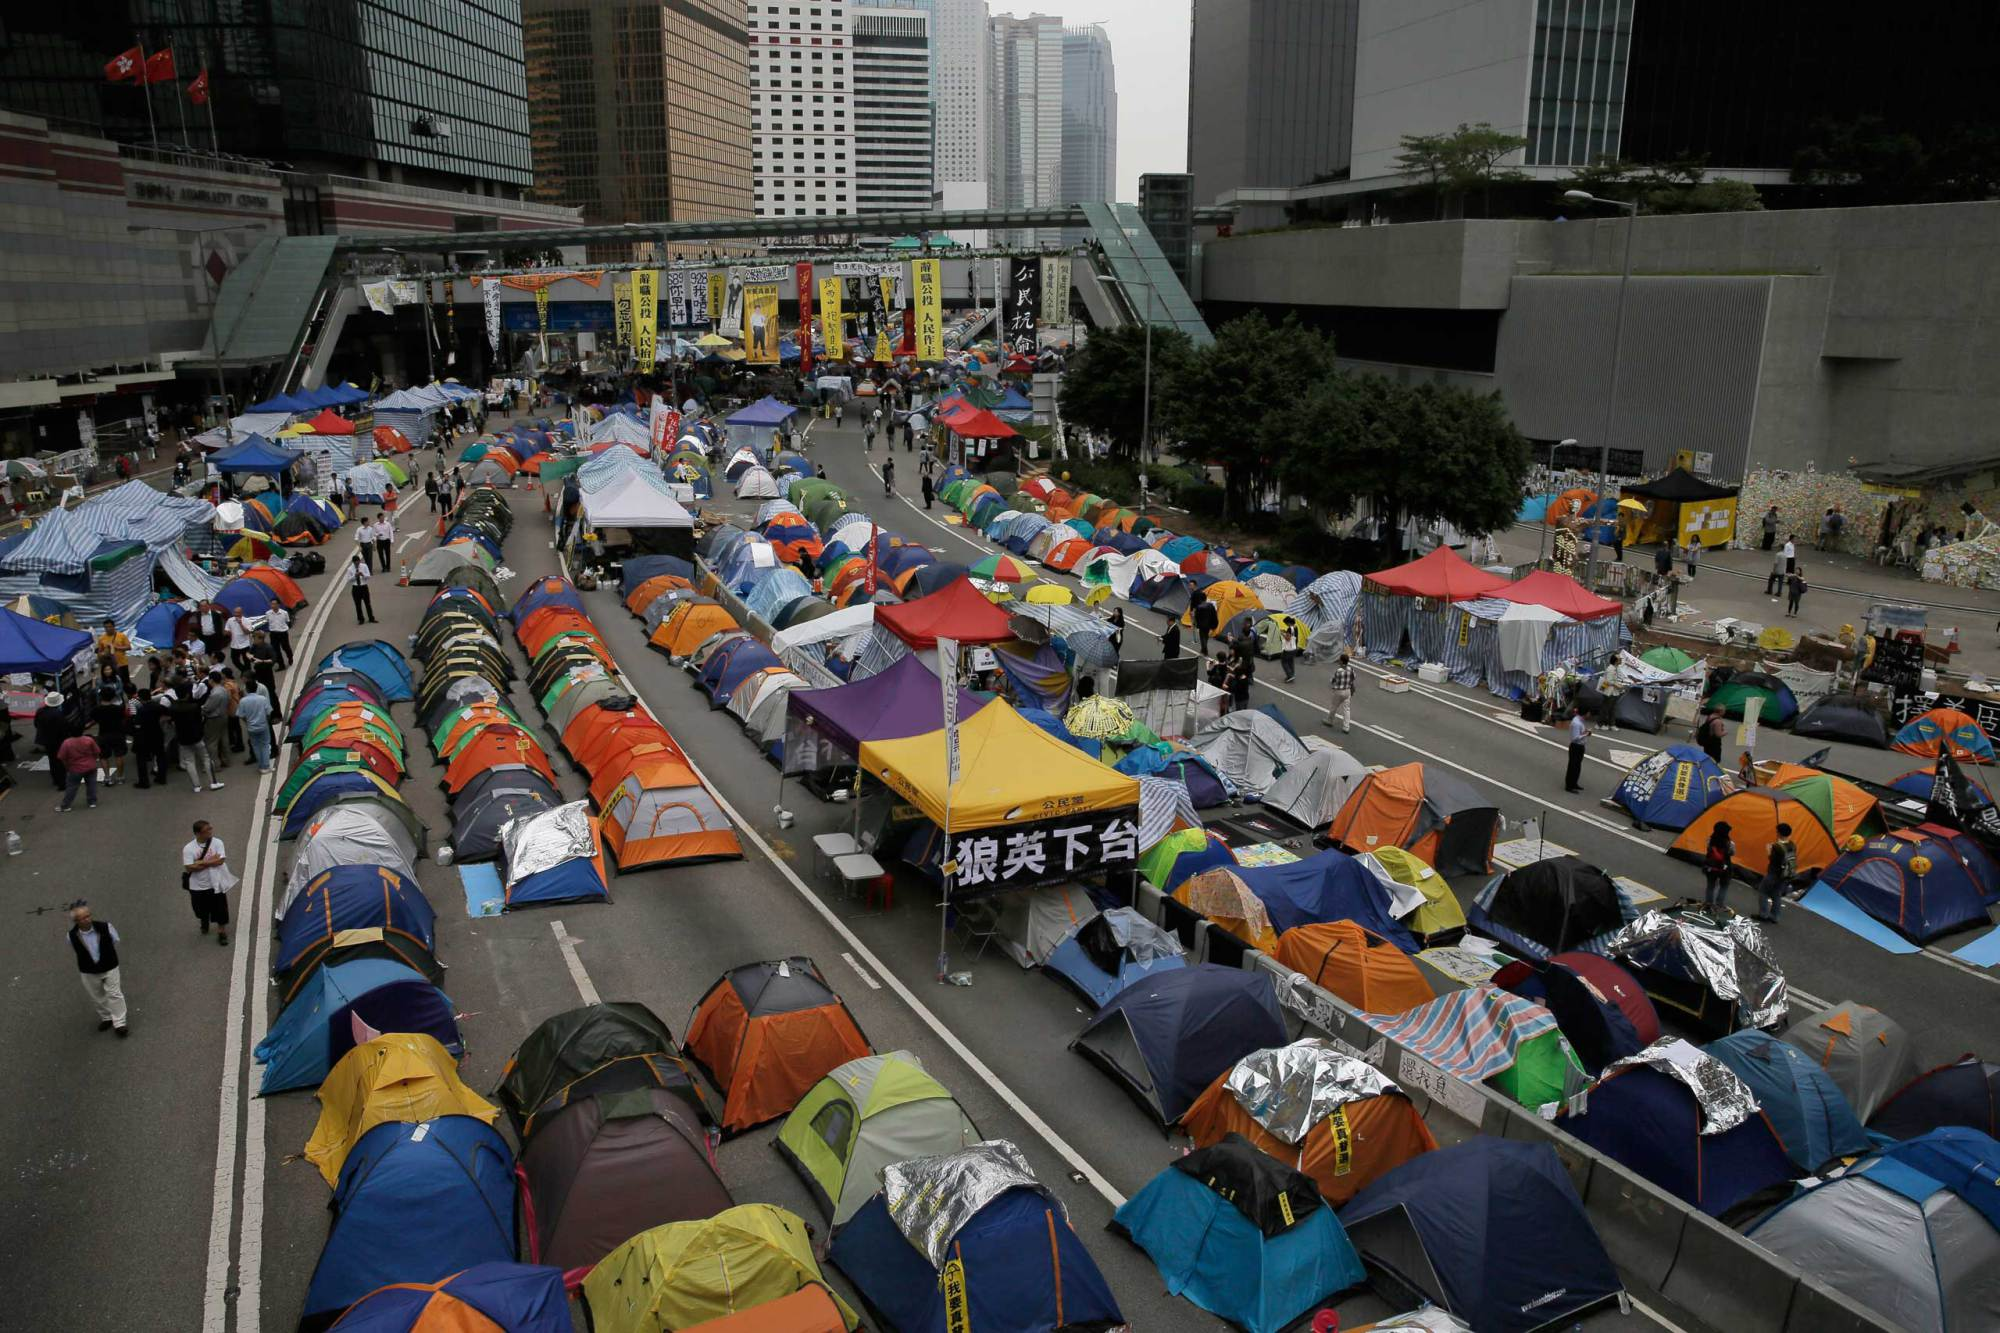 Surveillance of HK Democracy Supporters Revealed